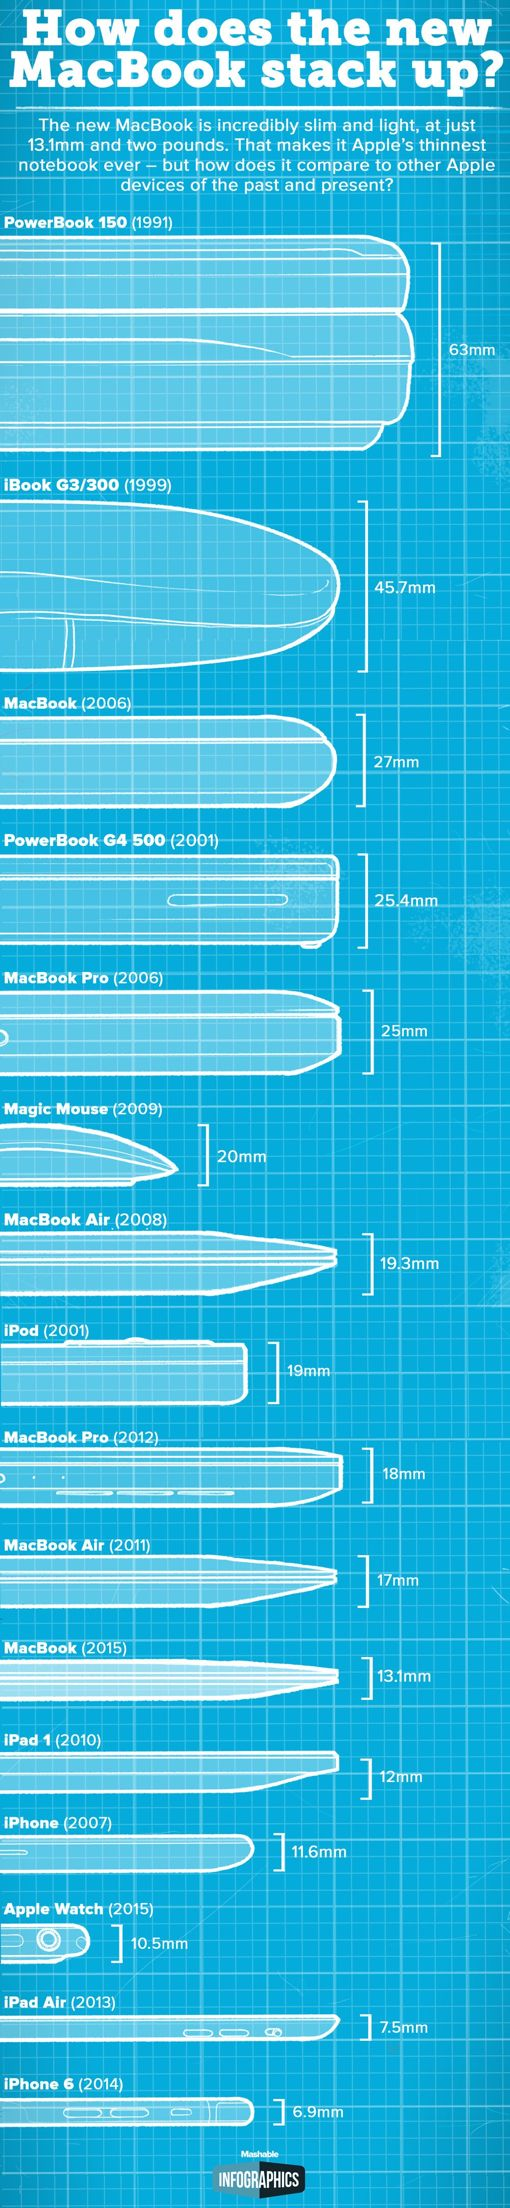 Have a look at how Apple's laptop thinned over time